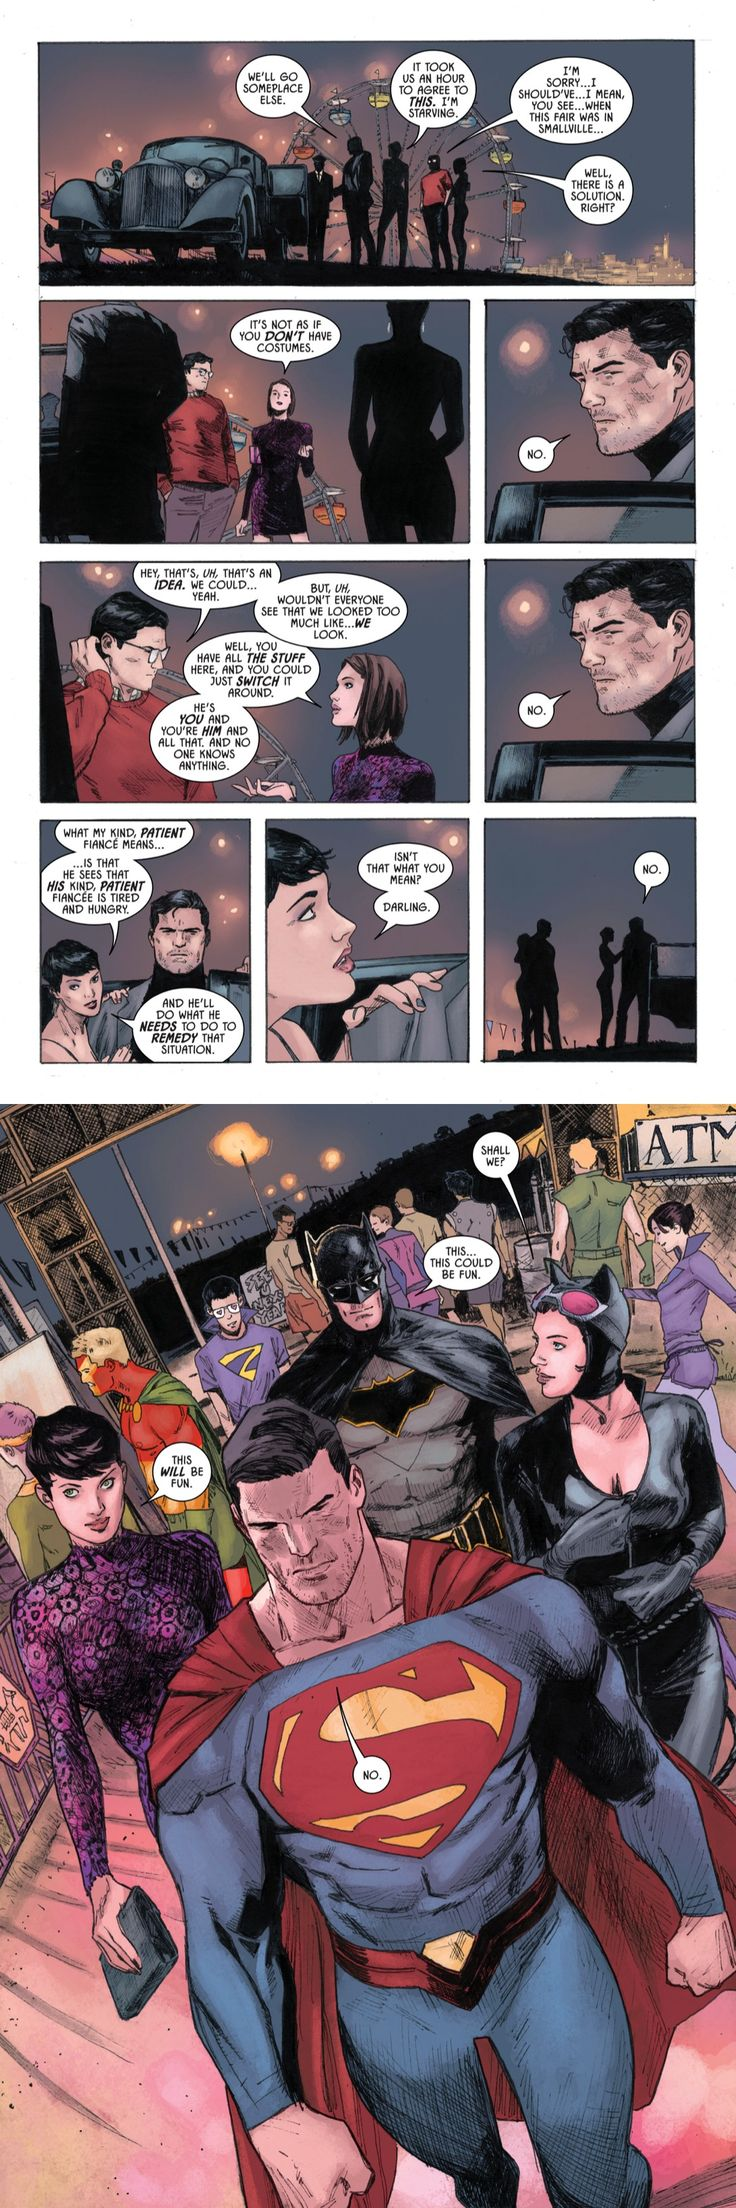 Batman (2016-) #37 - 'Date Night' | I didn't know I needed Batman and Superman swapping costumes until it happened